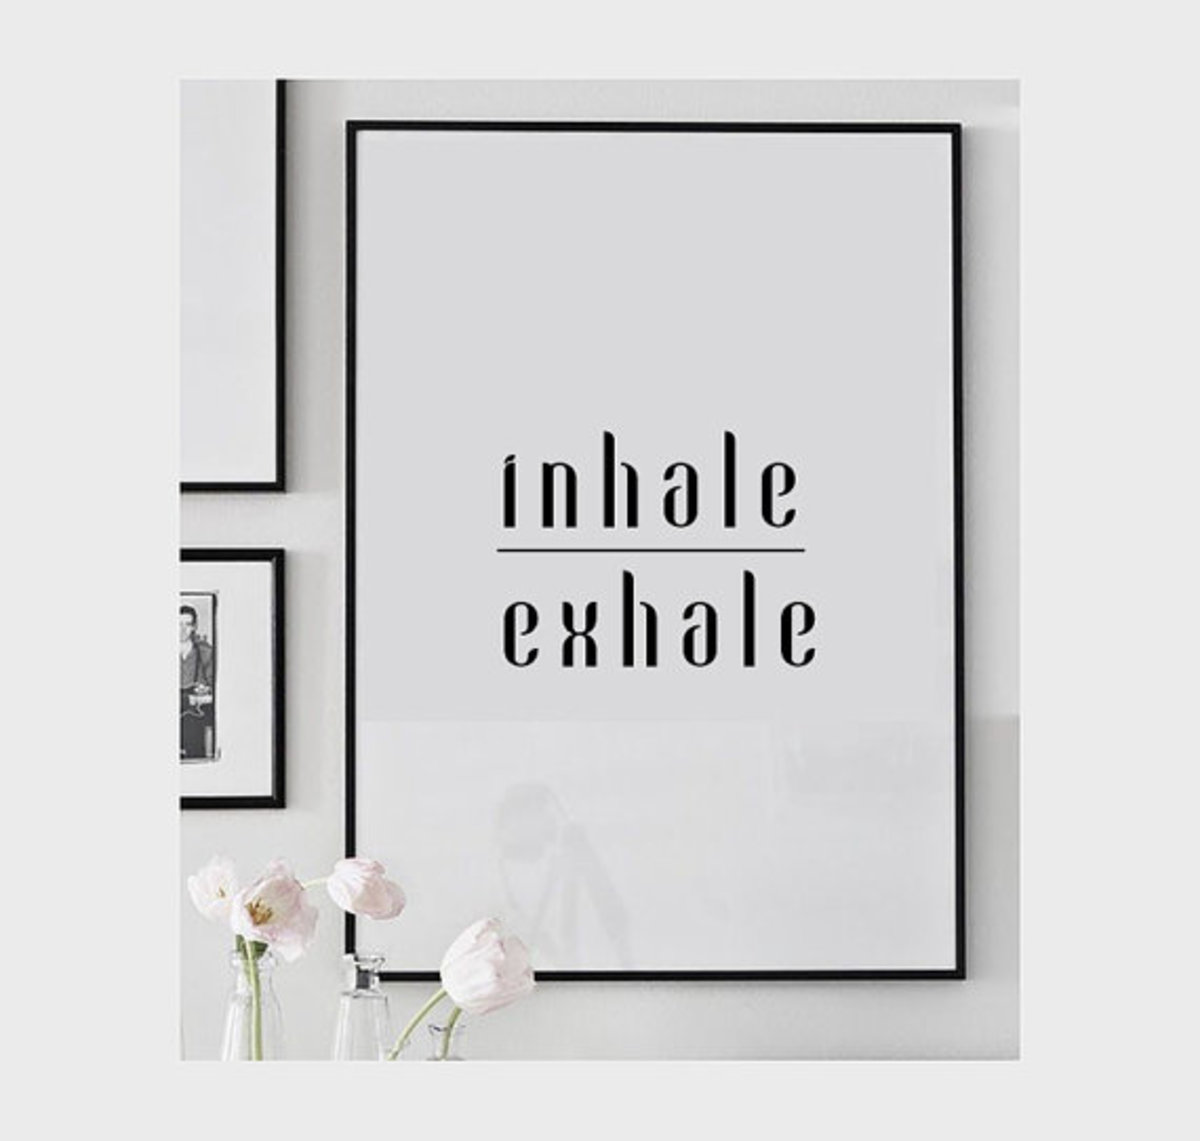 Deep breathing: inhale, exhale.